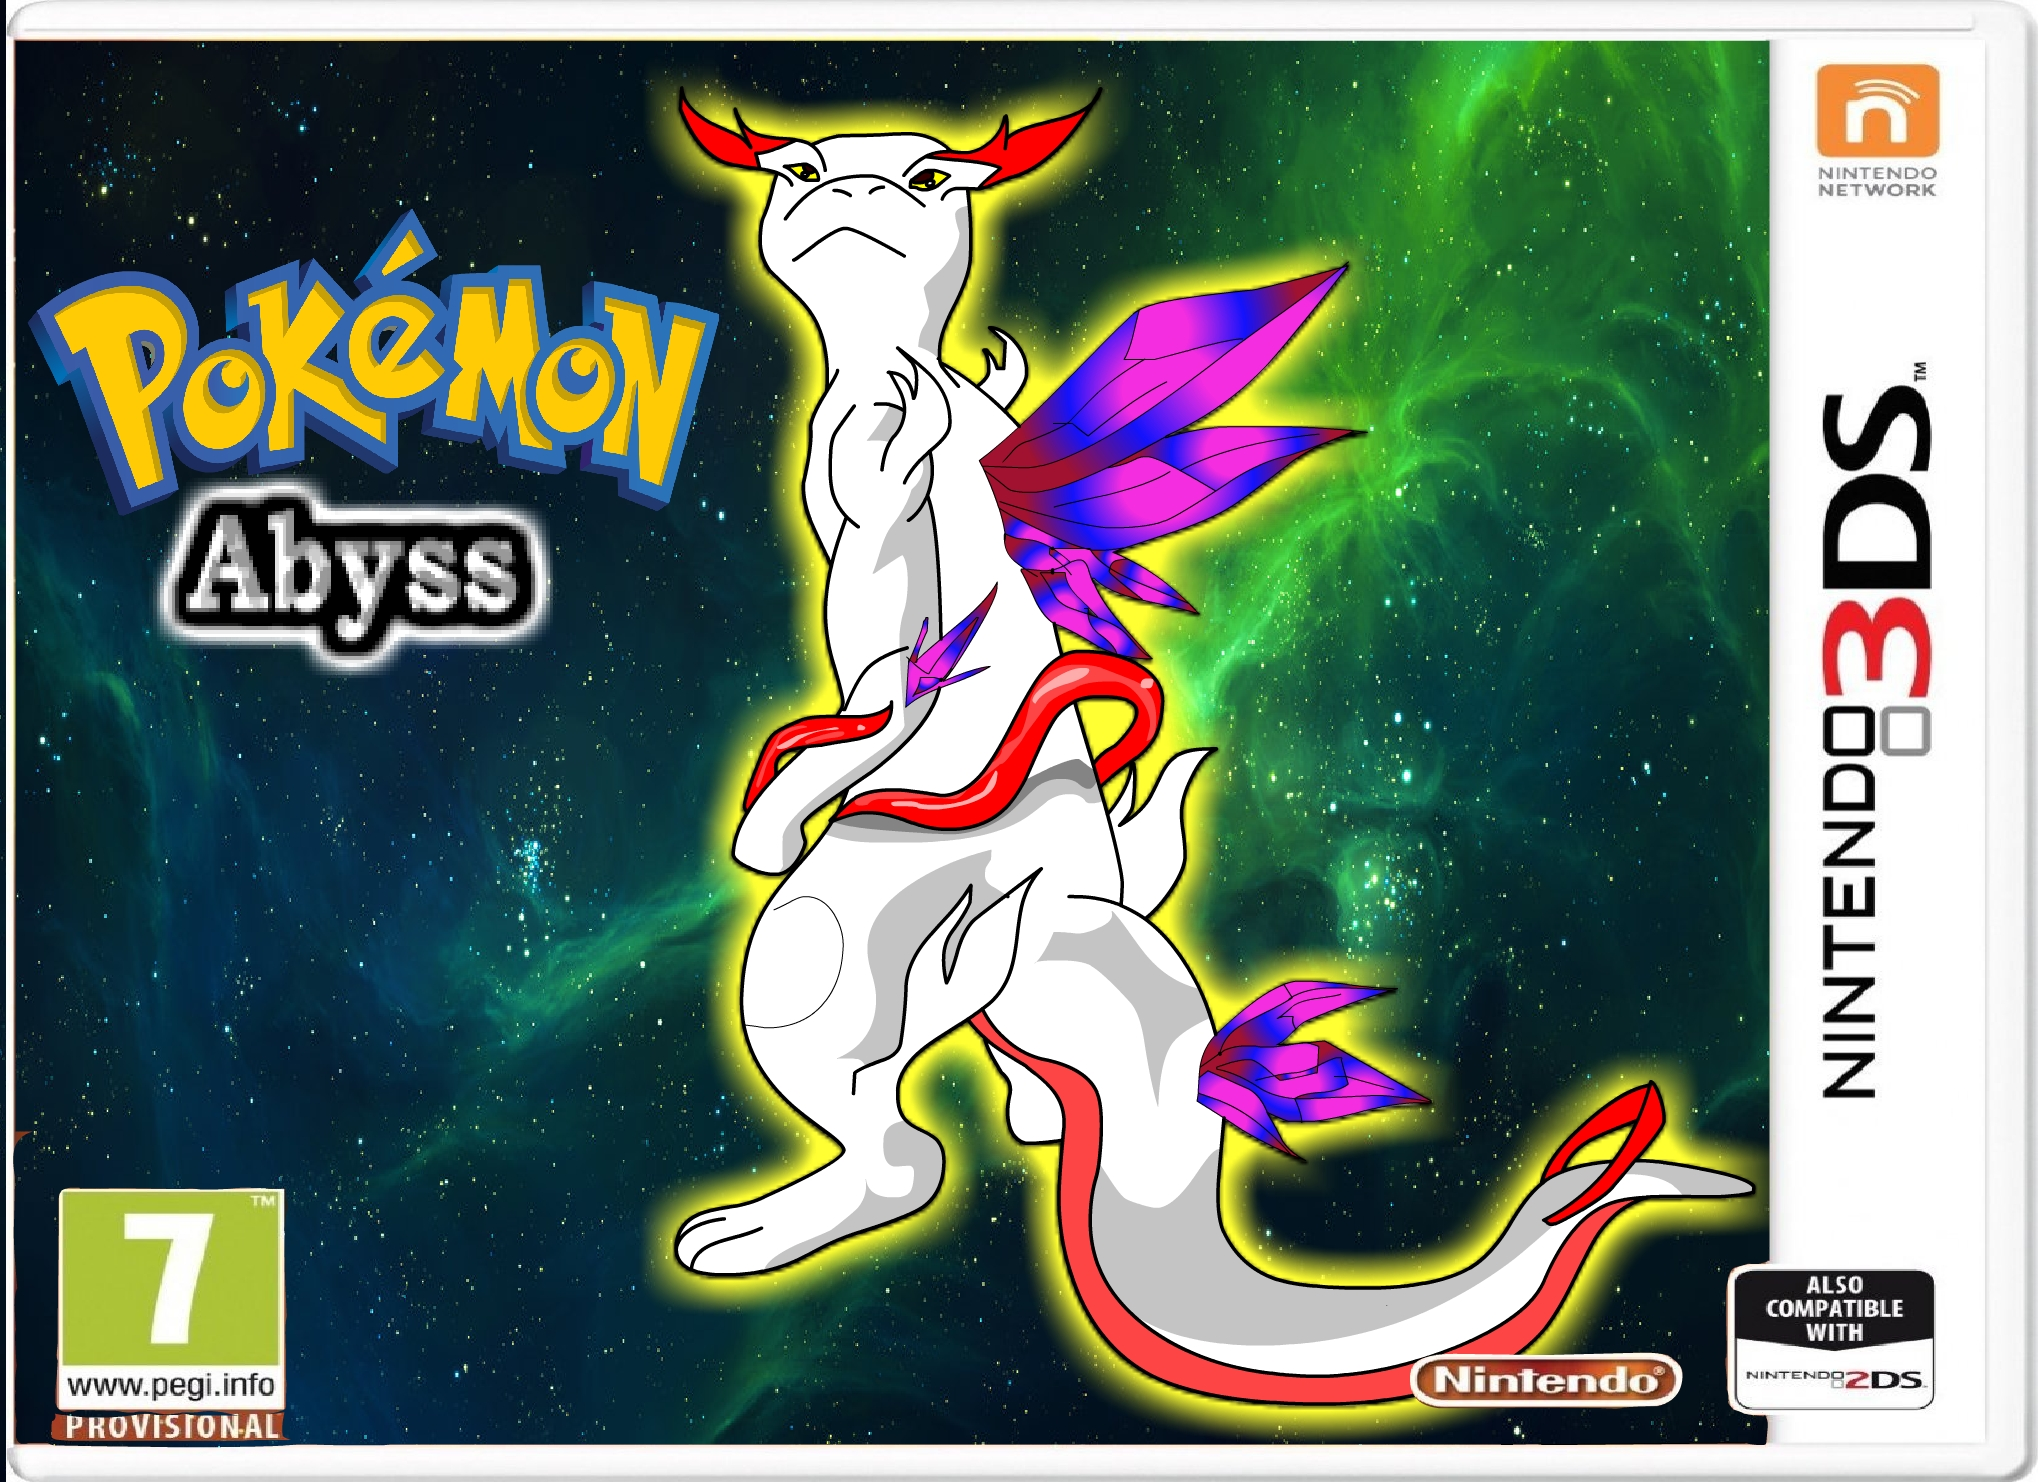 Pokemon Abyse and Oaisis pic 3